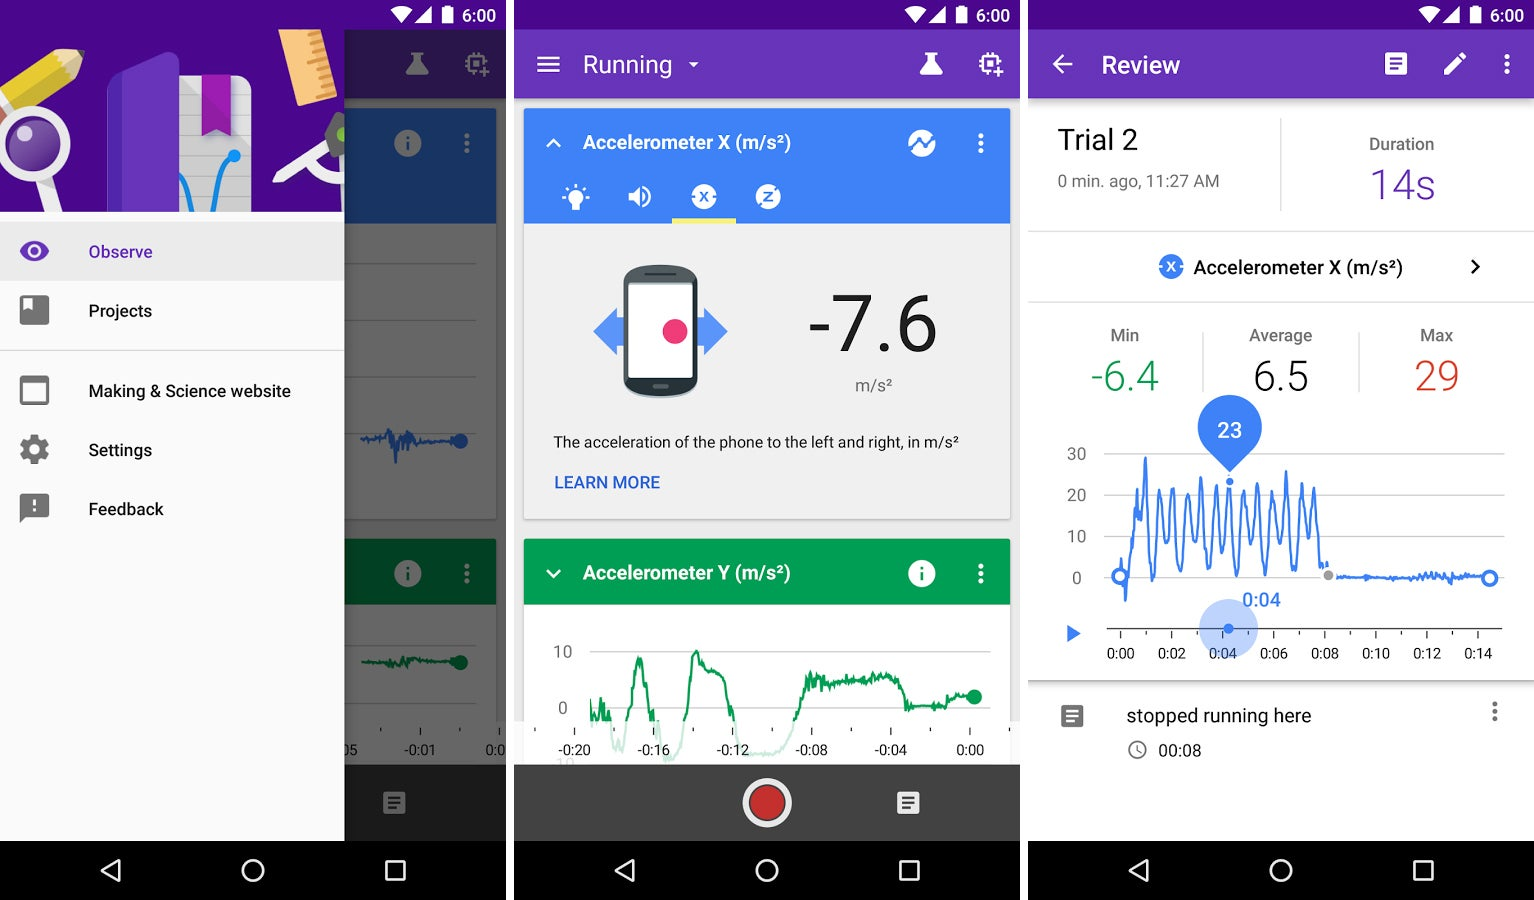 Google's New Science Journal App Turns Your Android Phone Into a Lab Full of Sensors